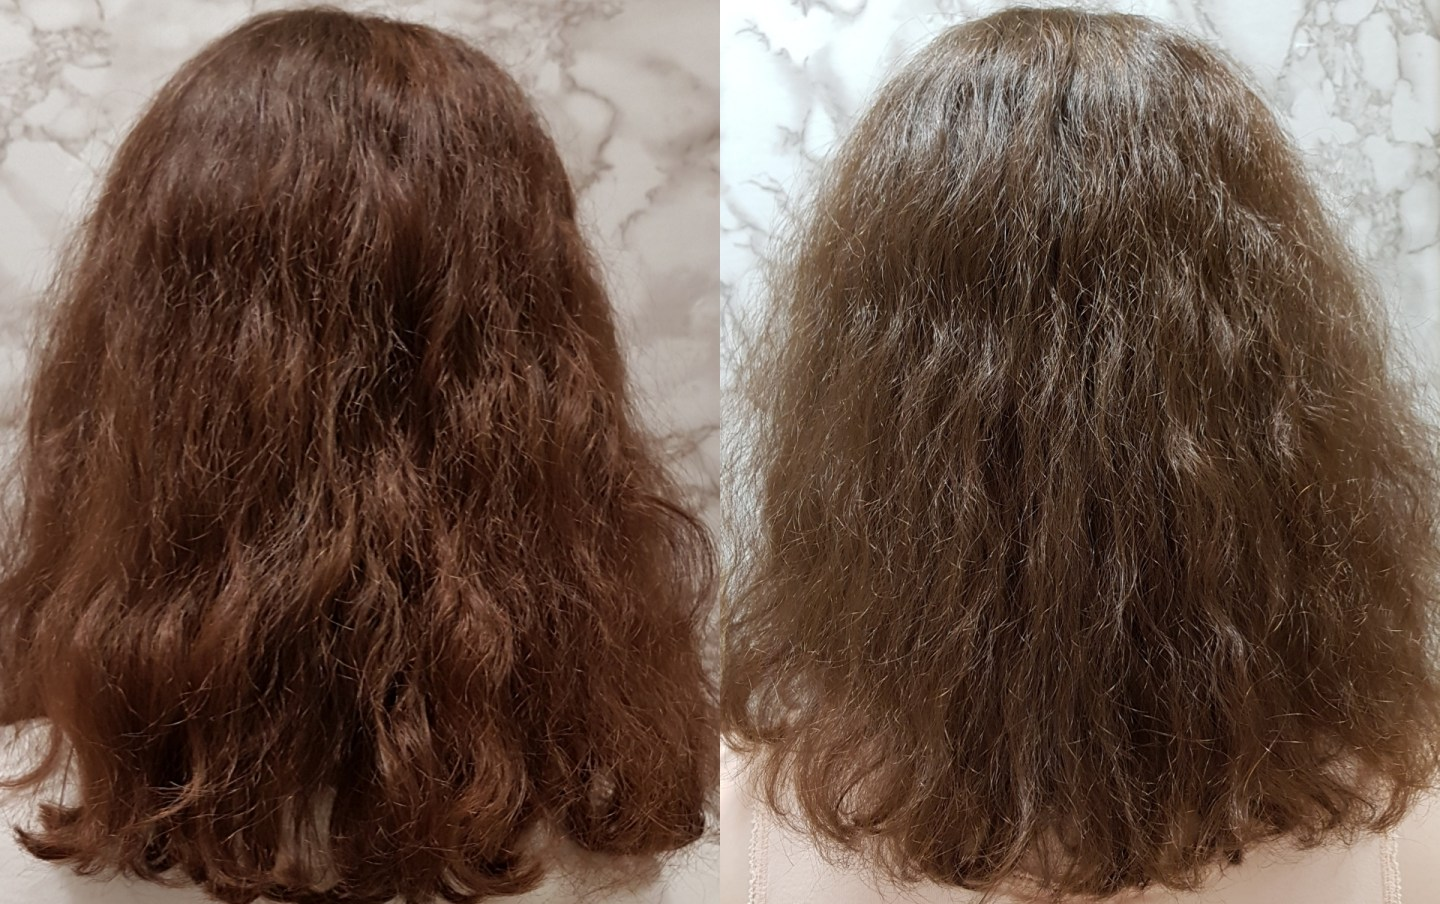 Before & After Pictures Forest & Shore Hallelujah Hair Oil Review